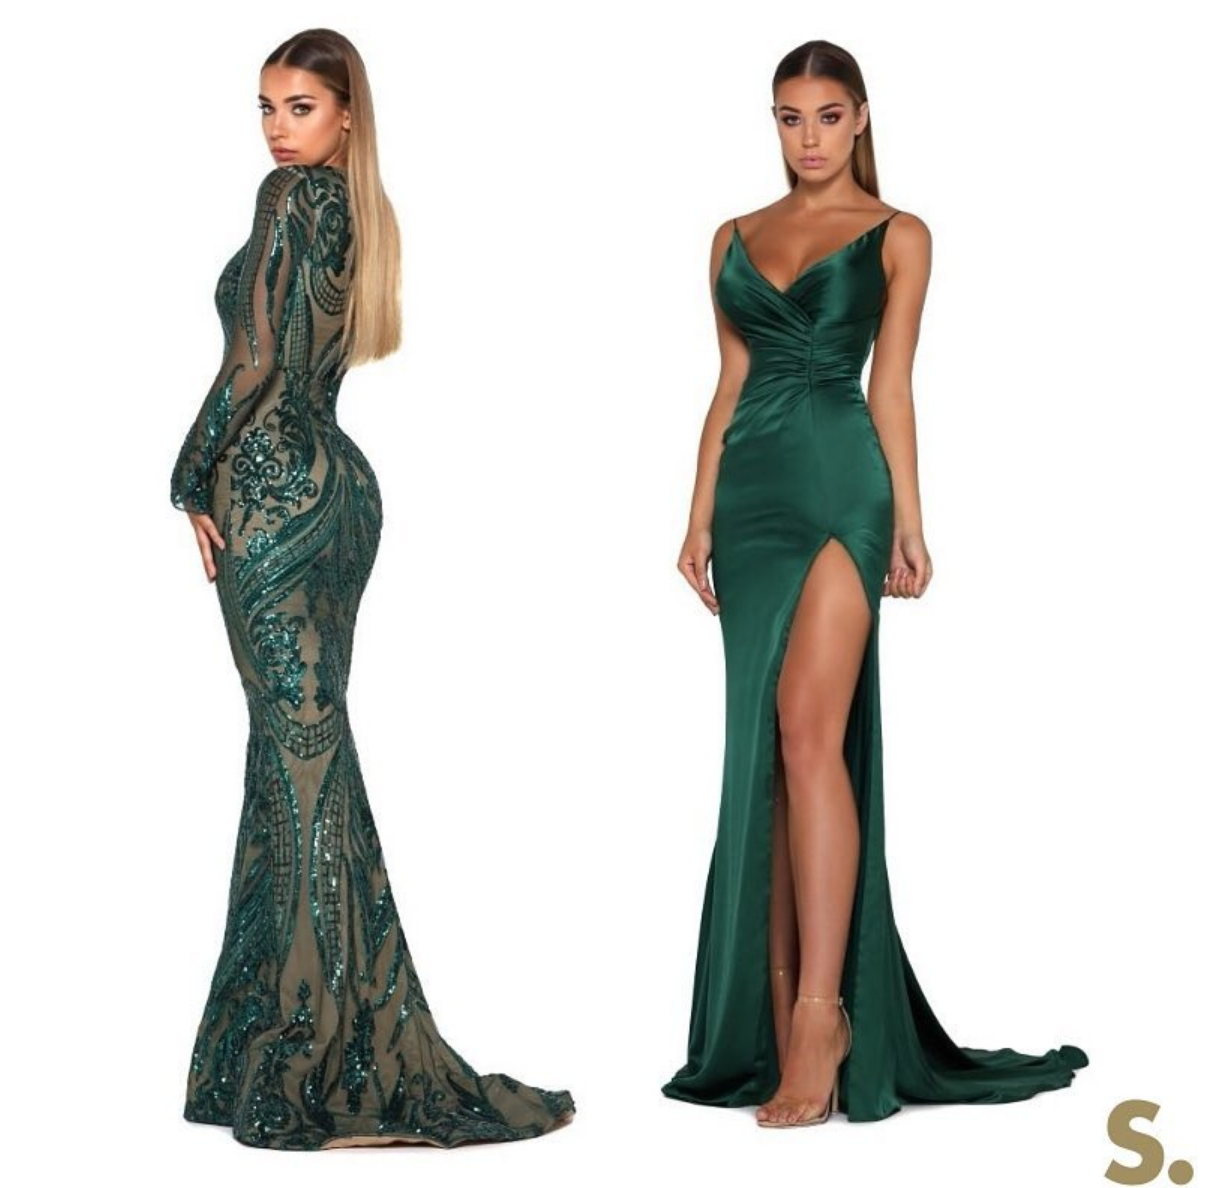 Emerald evening gowns by Portia and Scarlett at SHAIDE Evening Gown ...